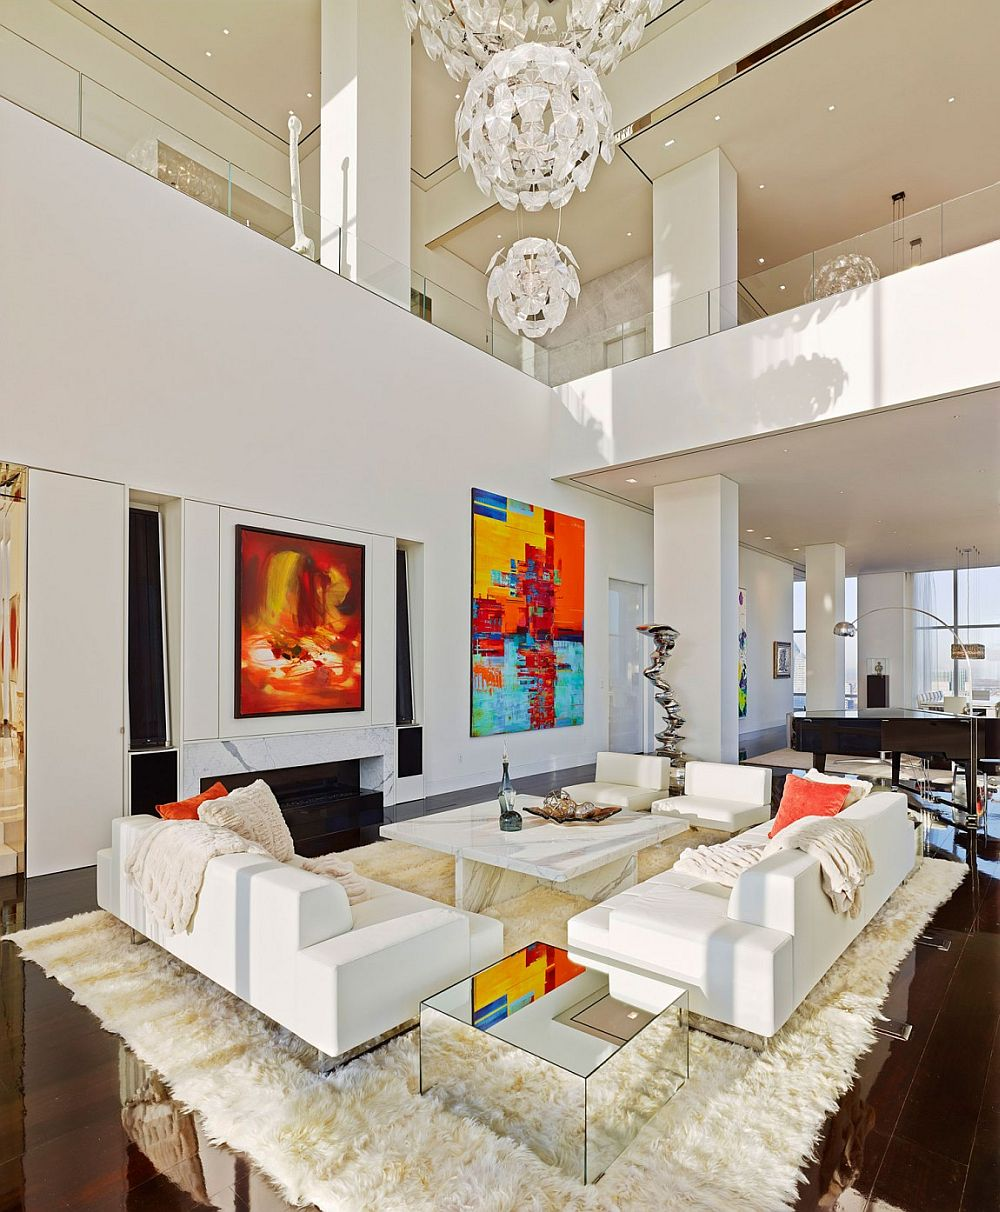 Breathtaking new york city penthouse leaves you awestruck for Living room decorating ideas nyc